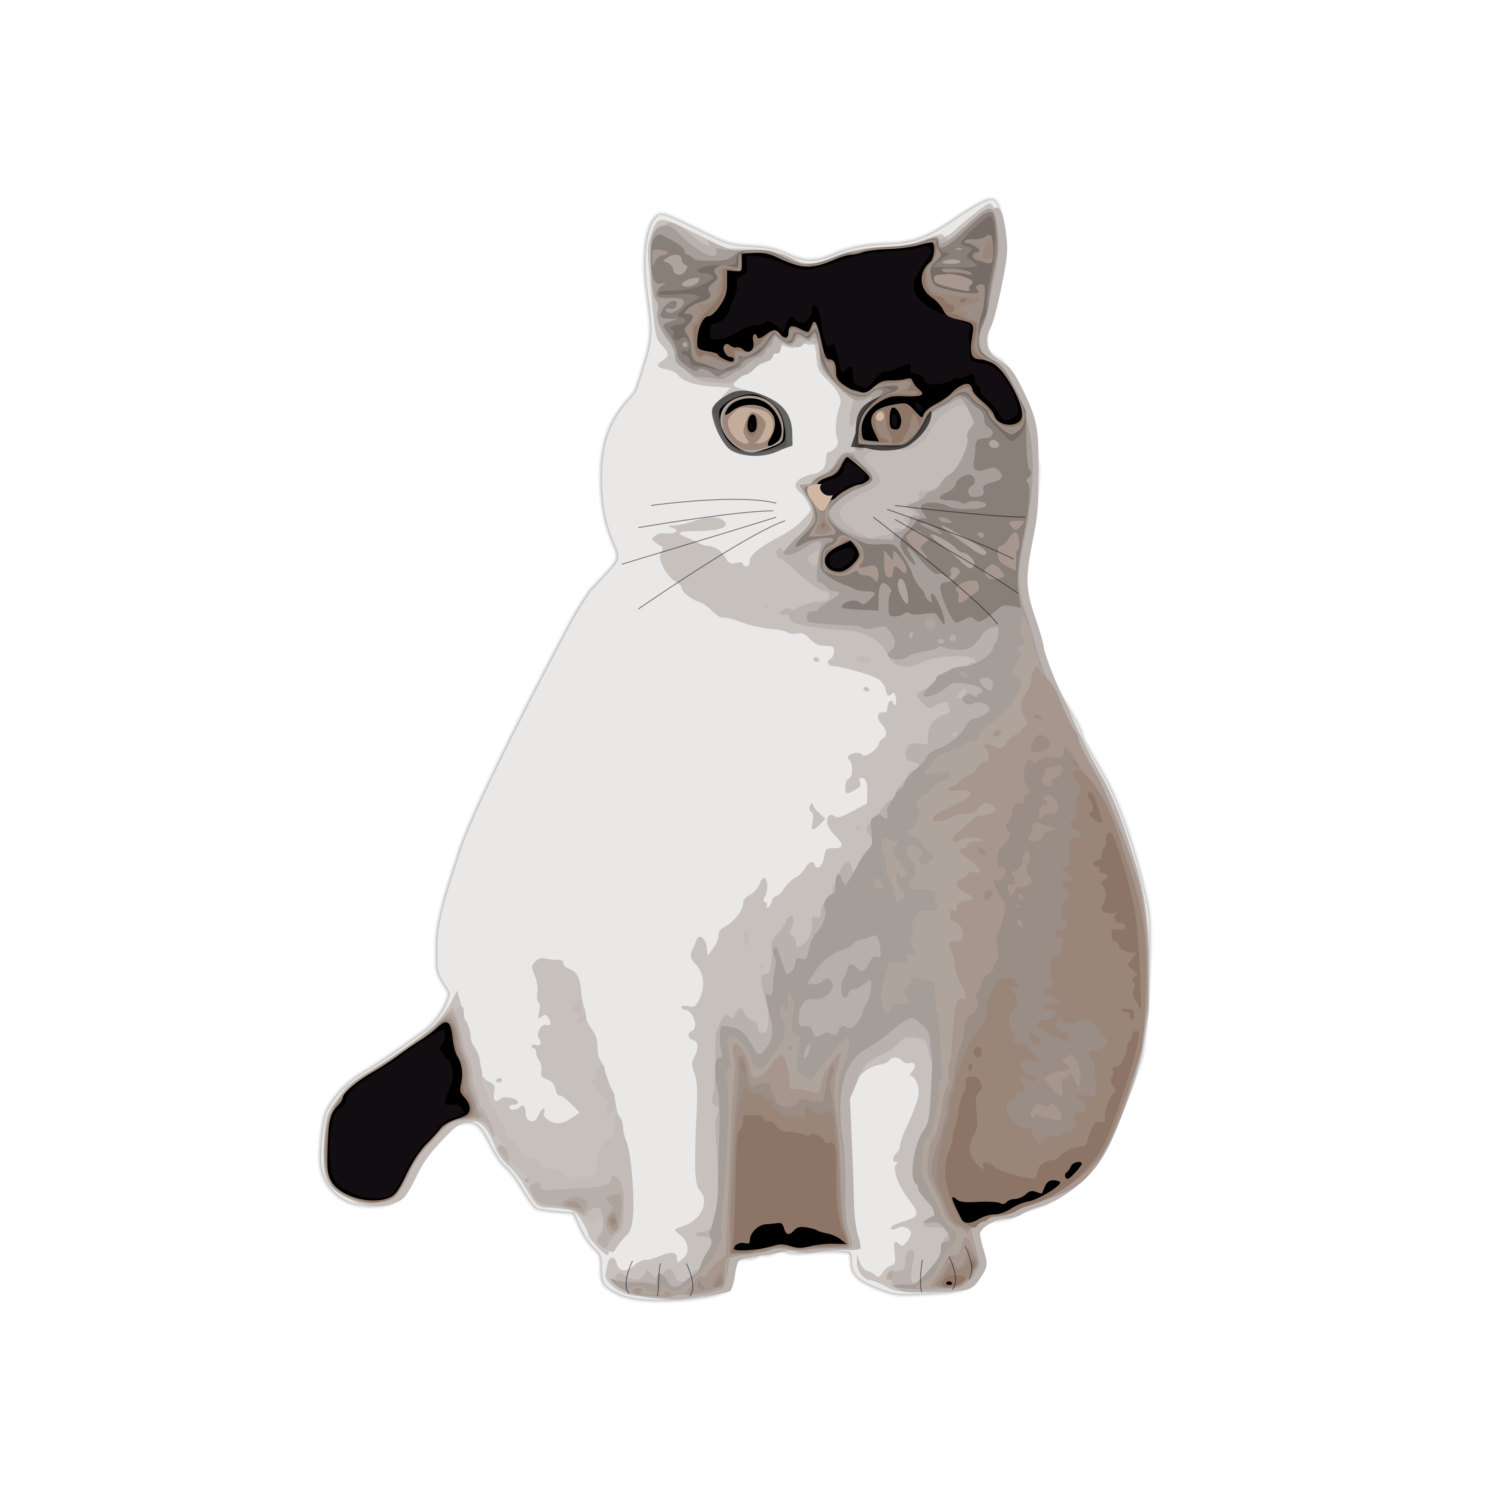 Feline clipart #13, Download drawings